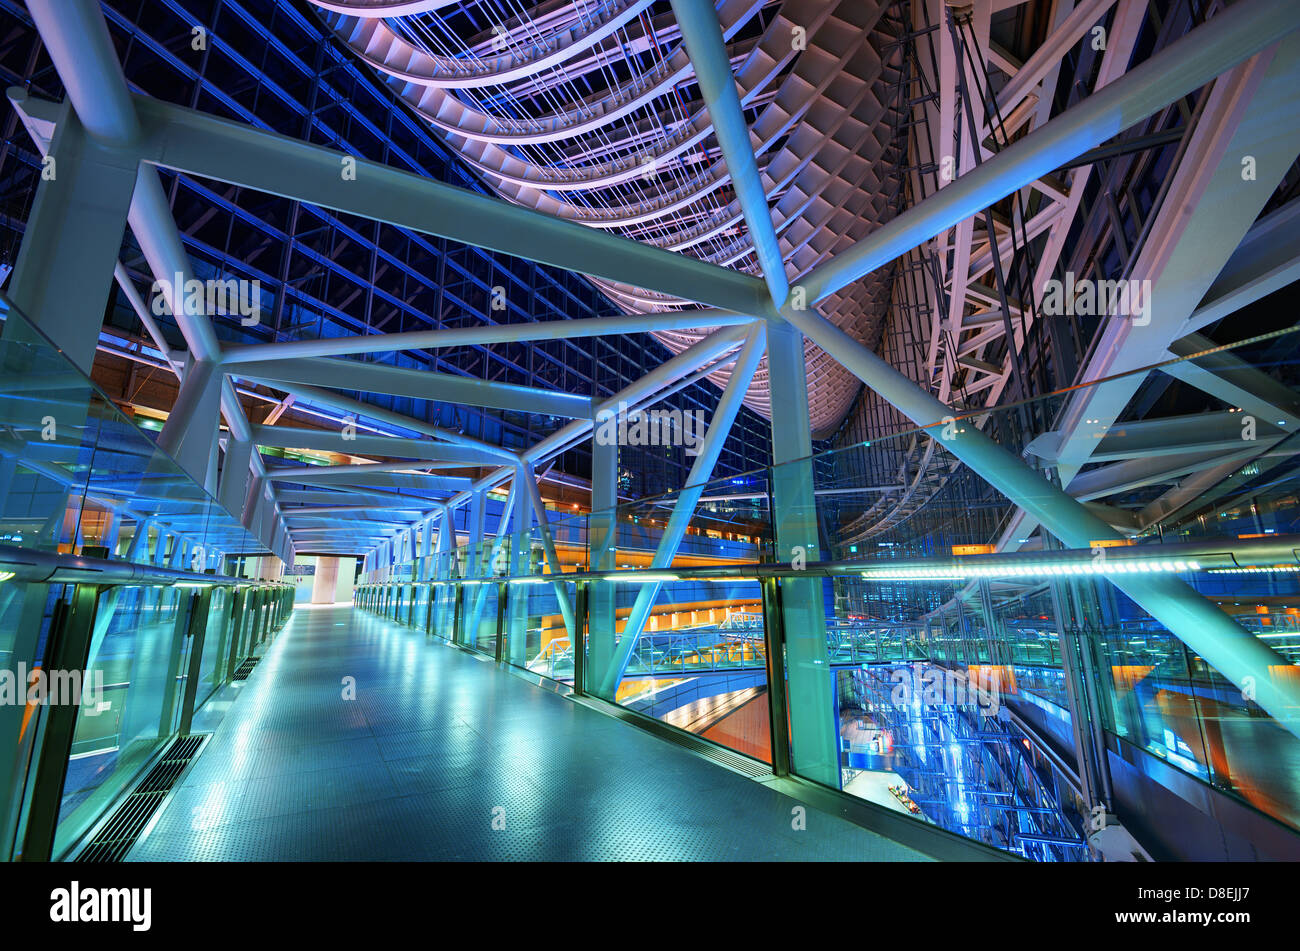 Futuristic architecture of Tokyo International Forum. - Stock Image